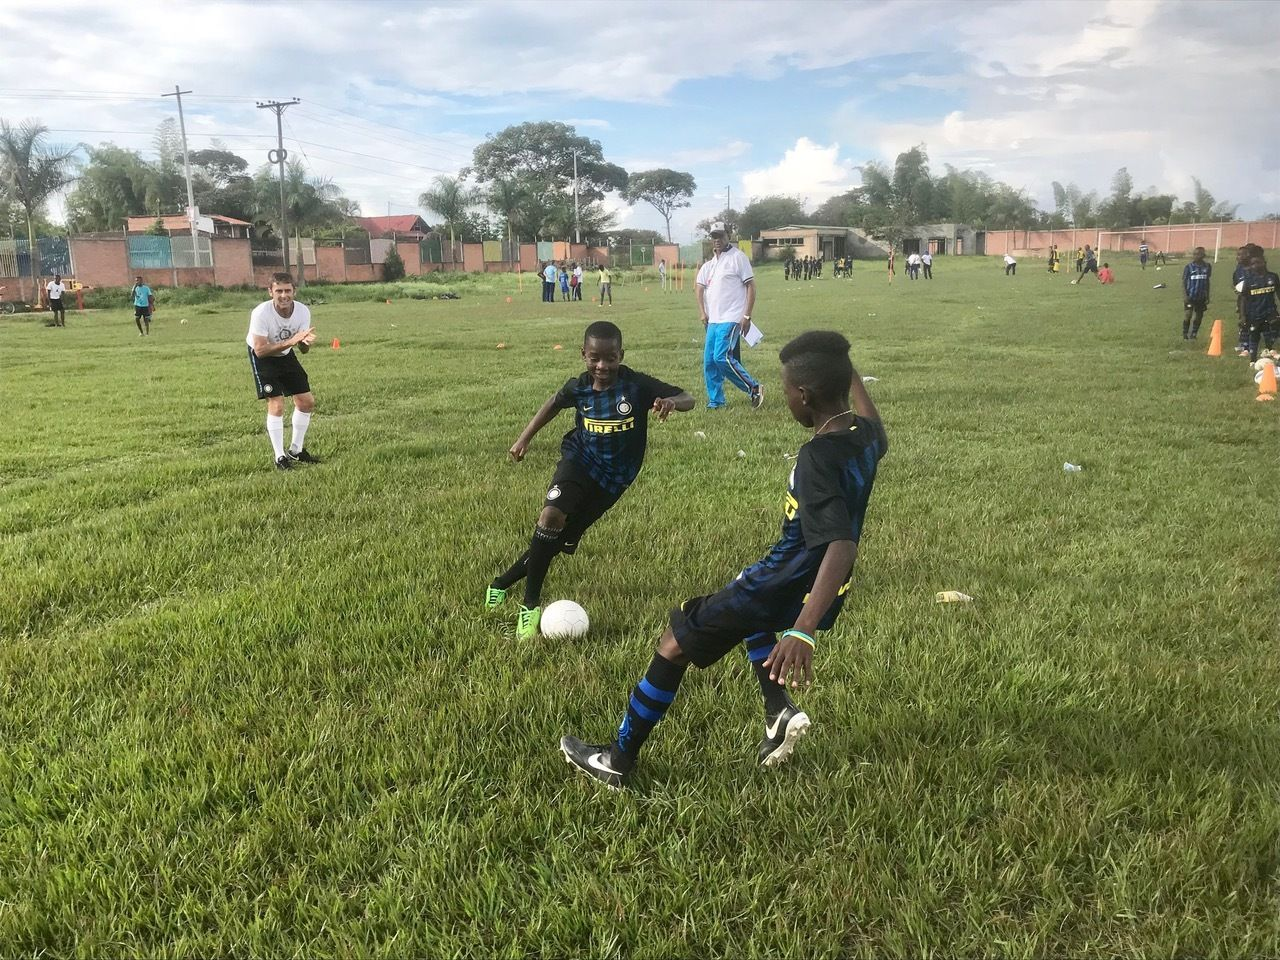 Inter Campus Colombia: Pitches, families and university